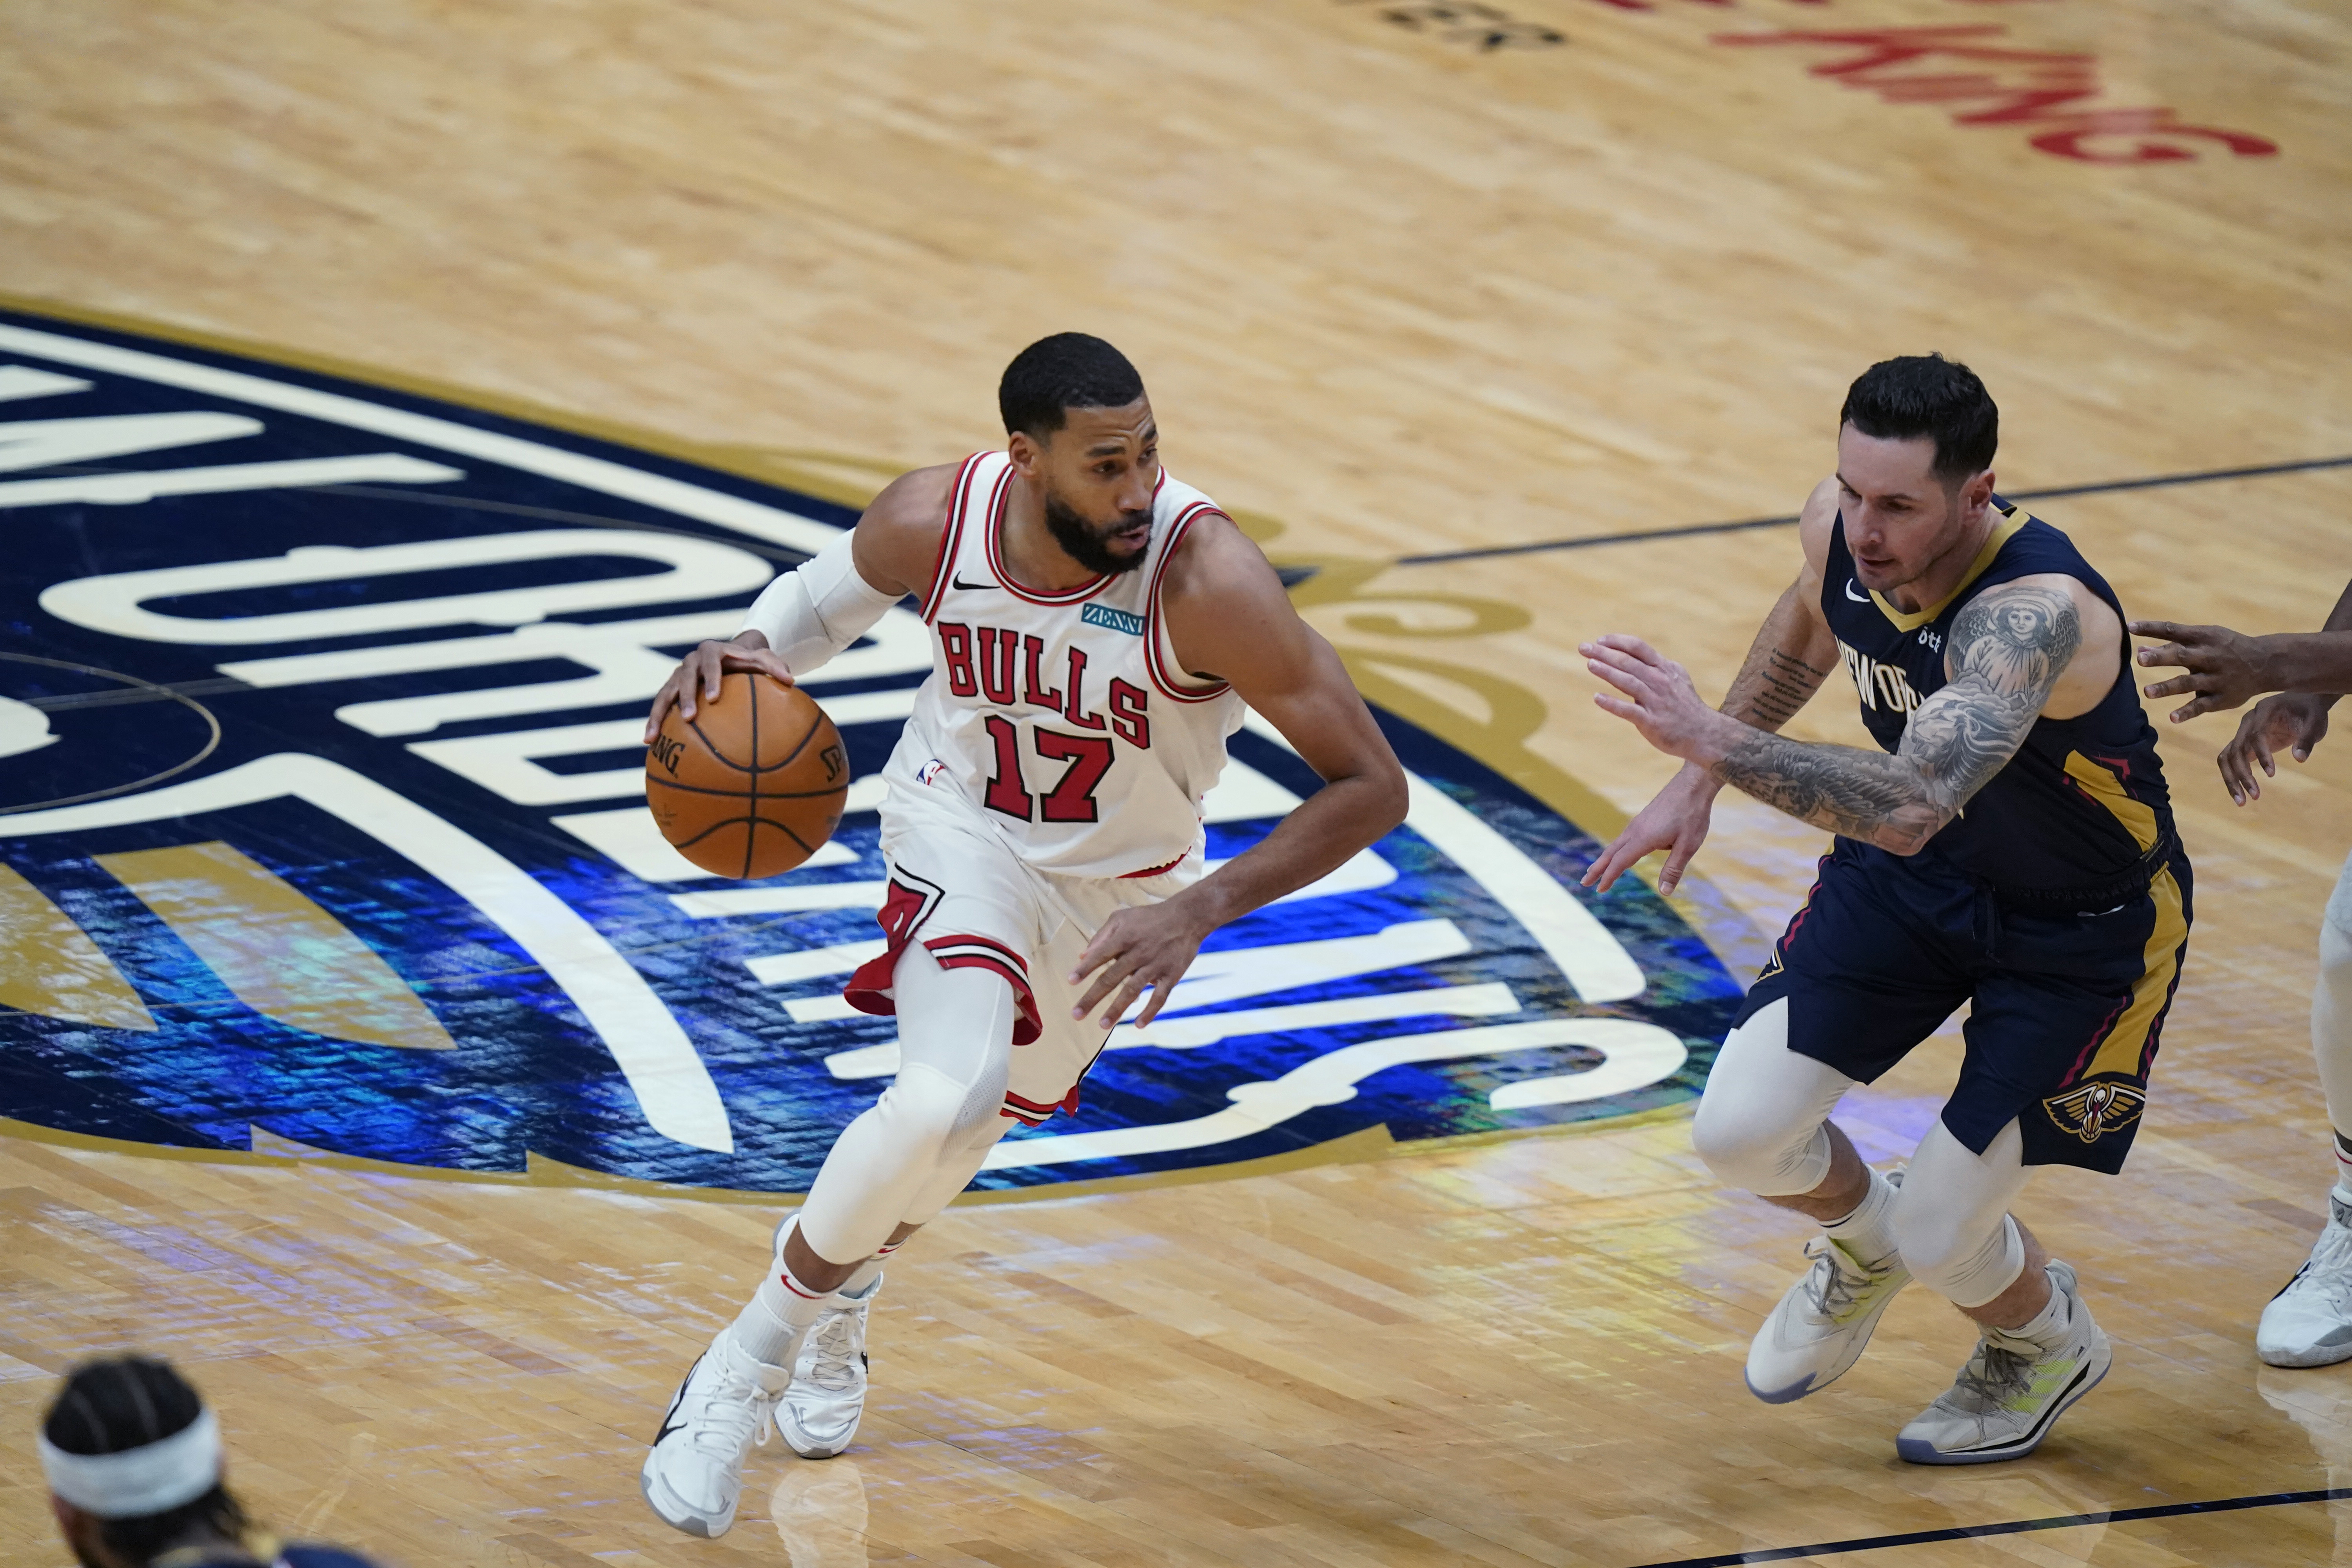 The Bulls' Garrett Temple believes the front office has the team on the right track.